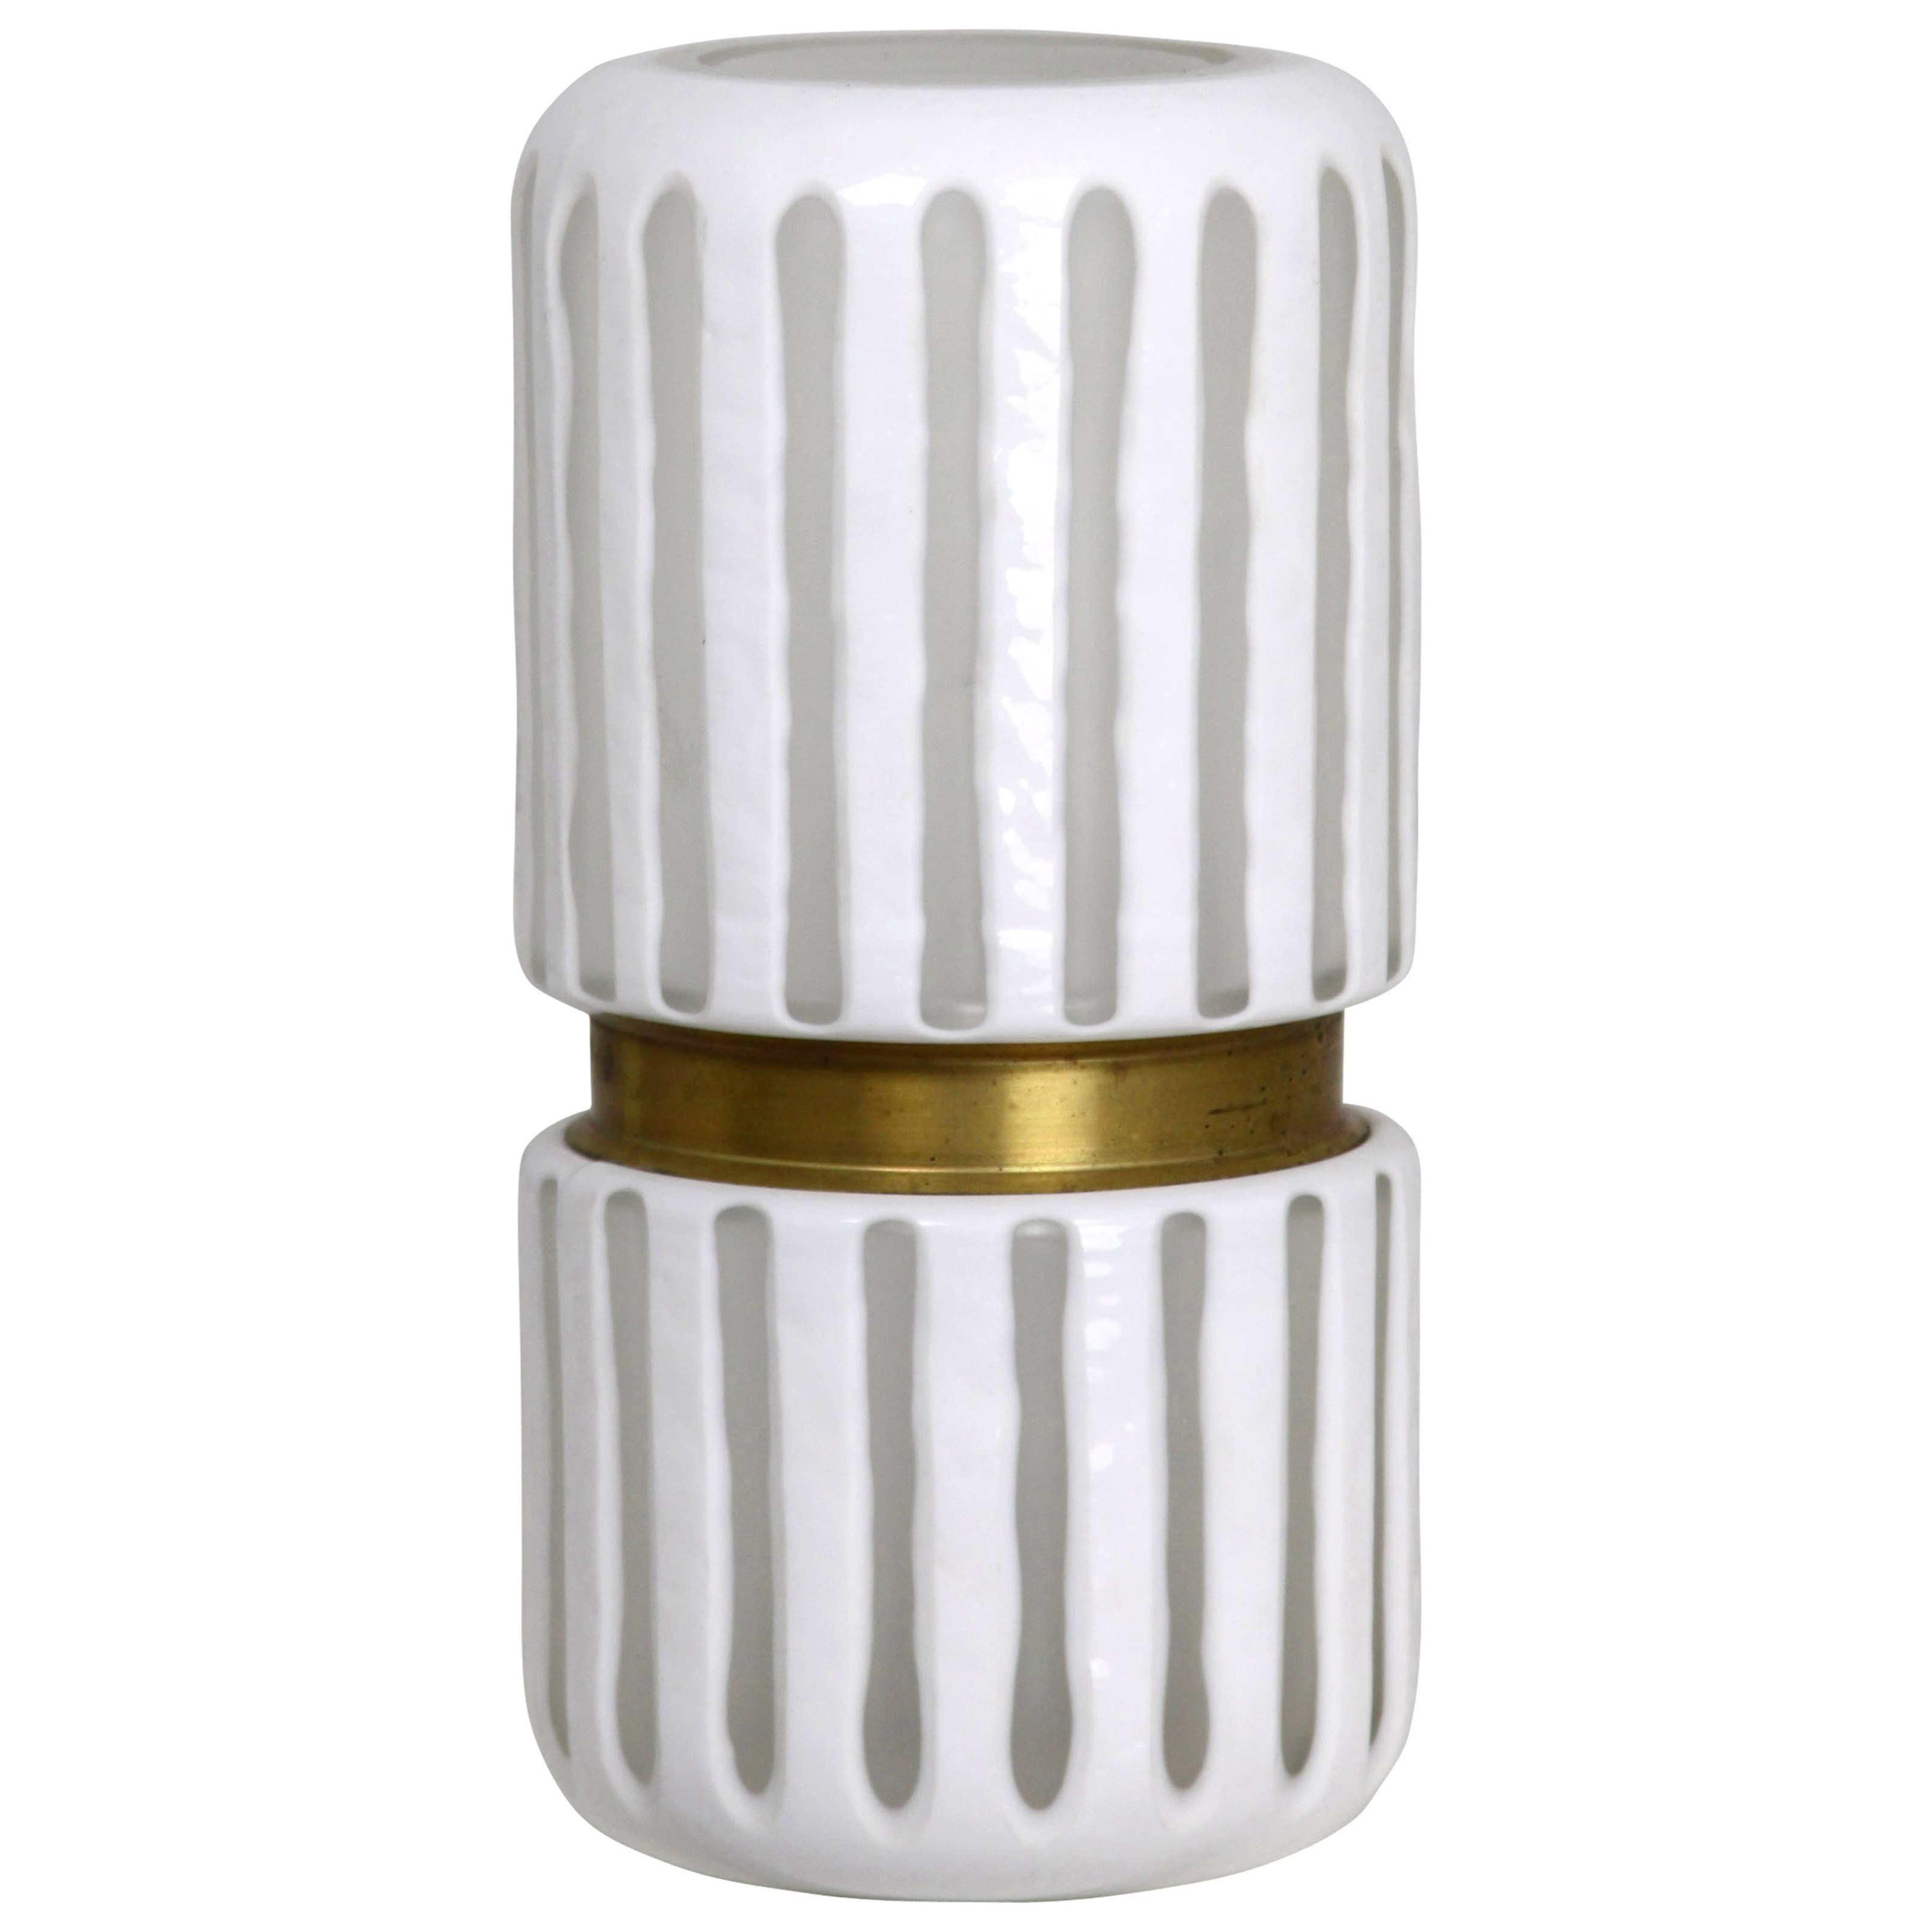 Accessories White Glass Vase by StyleCraft at Alison Craig Home Furnishings